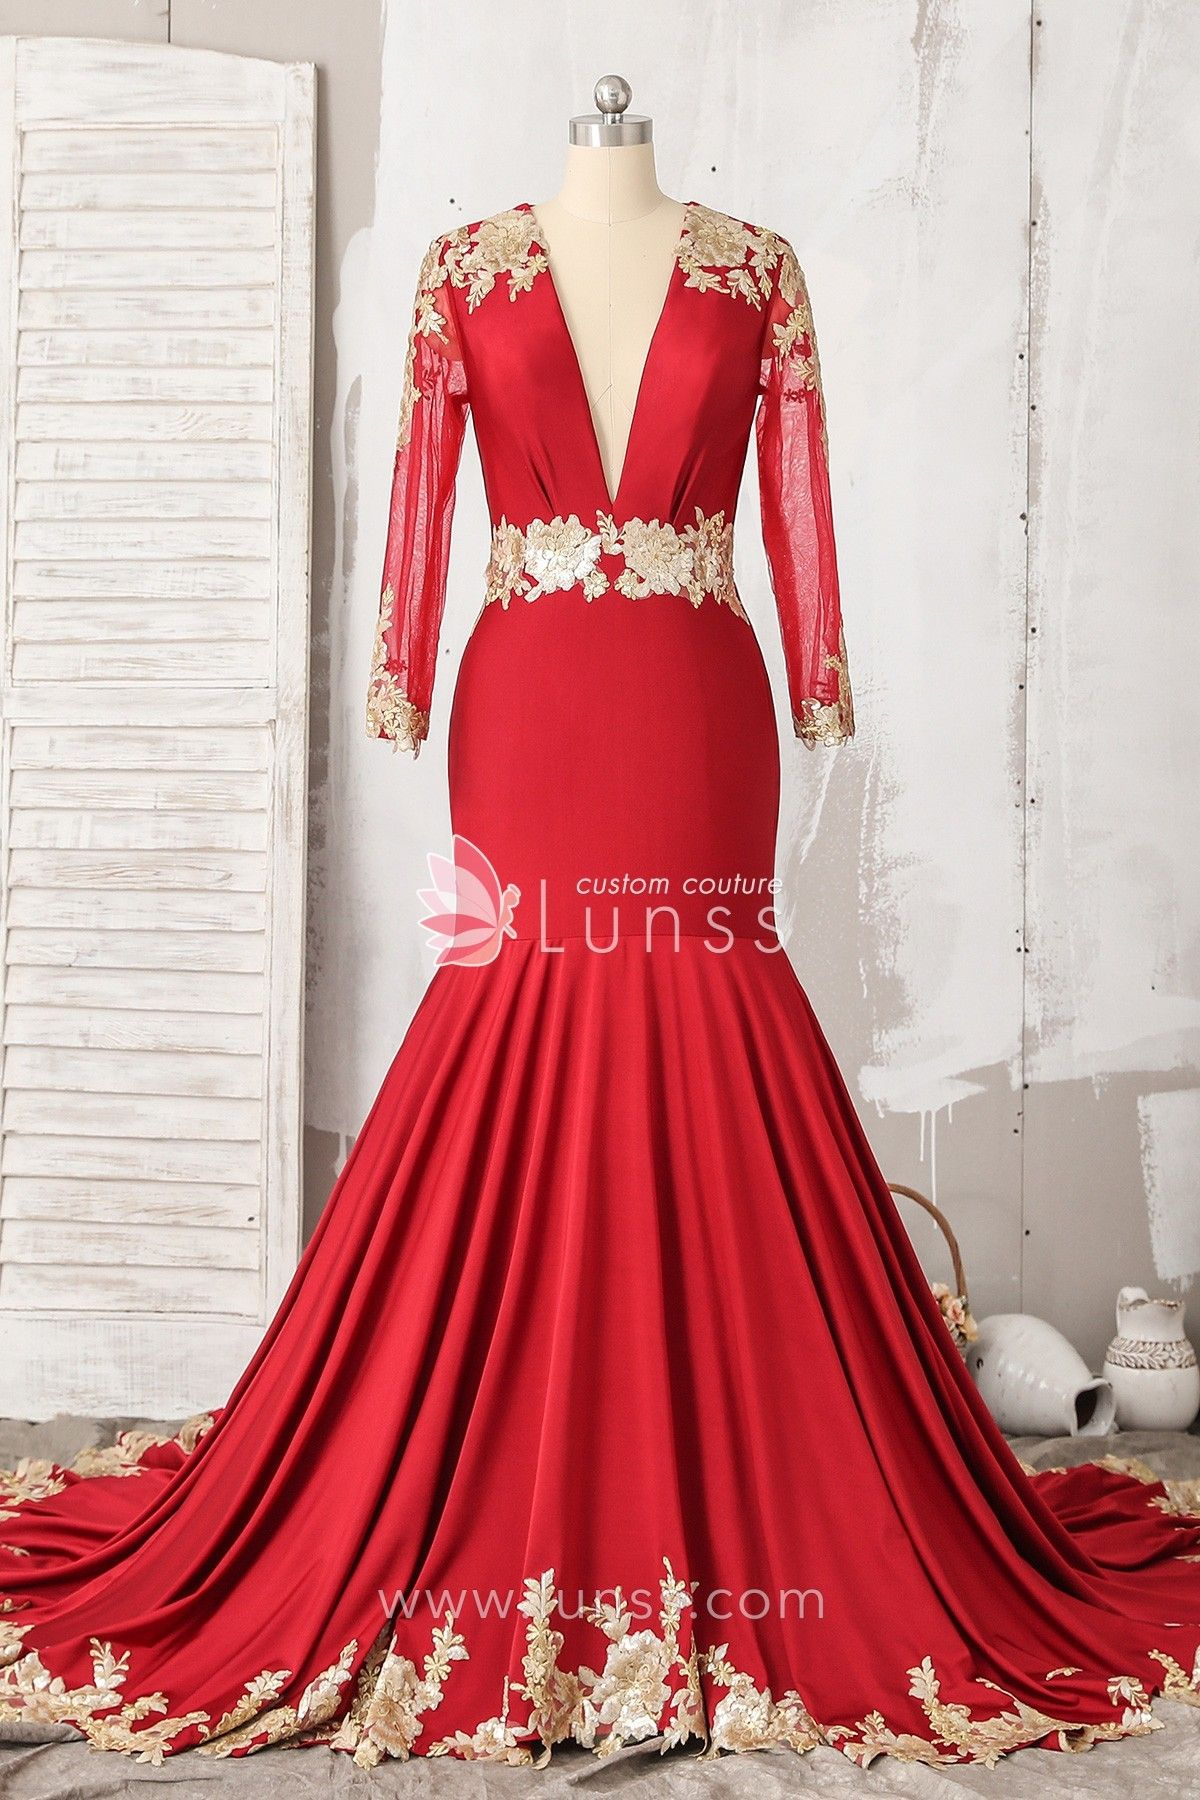 Red long sleeve plunging jersey mermaid prom dress with open back